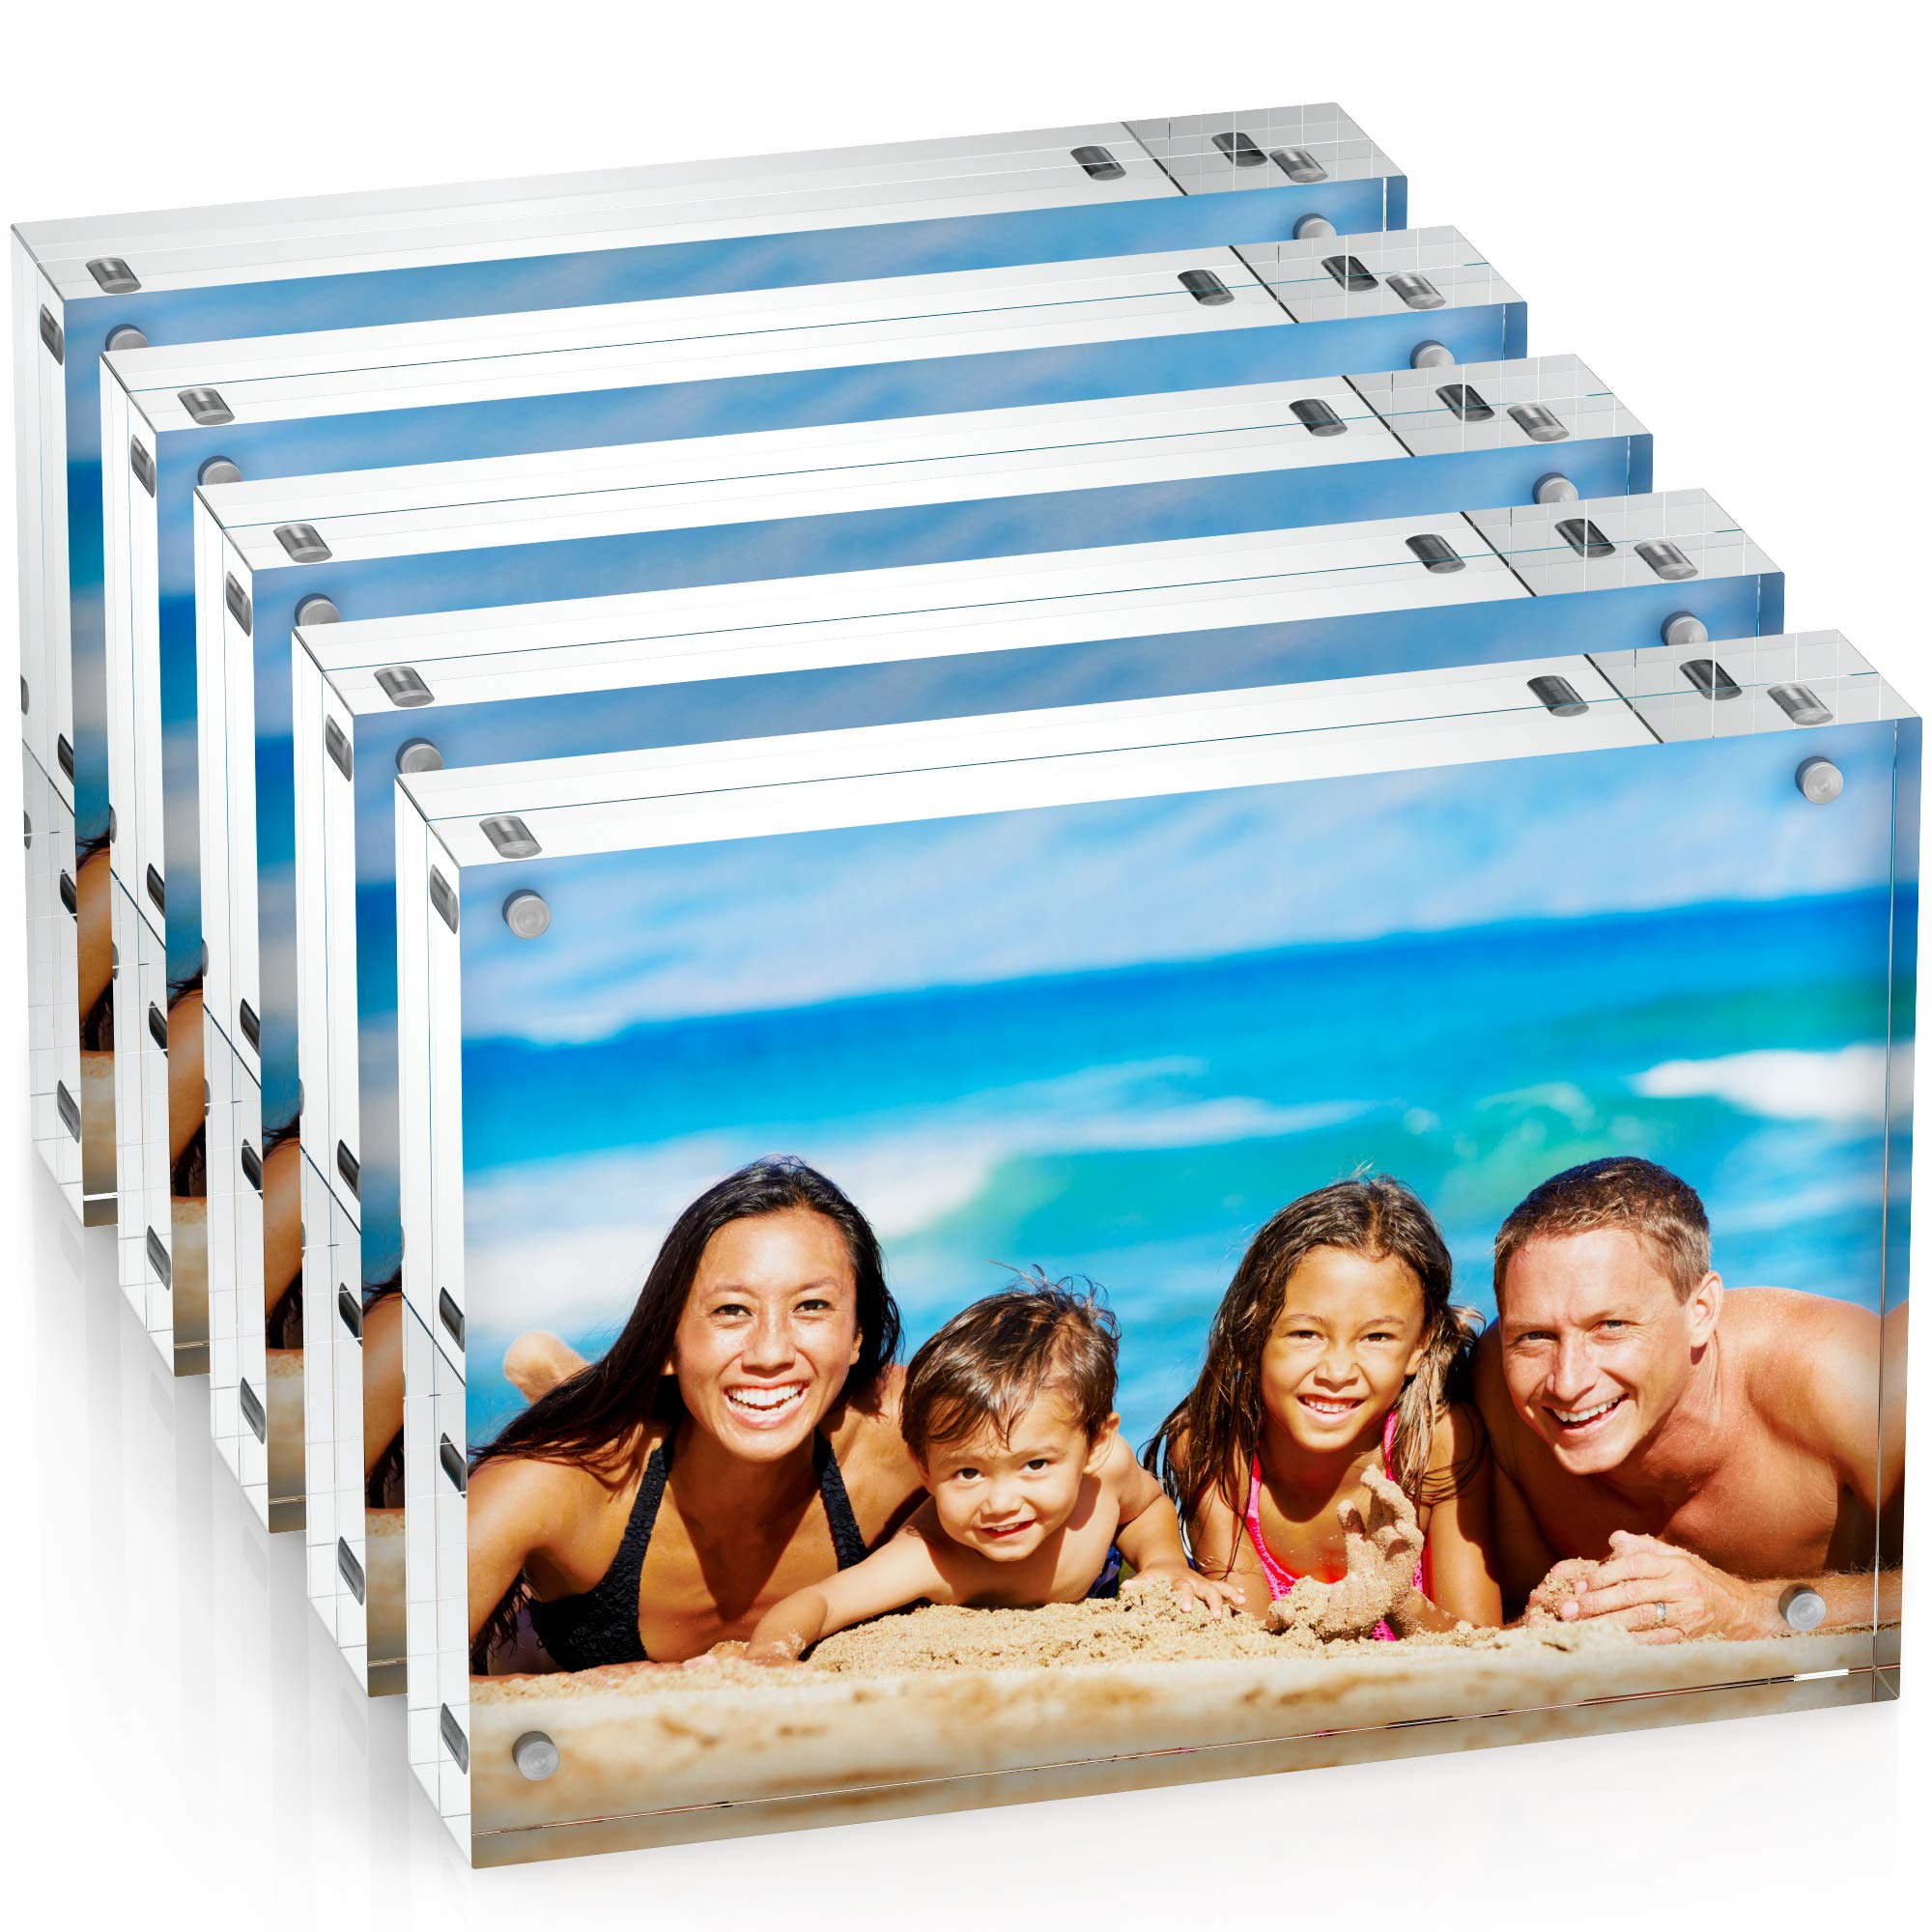 Unum Clear Acrylic 5x7 Picture Frame: Magnetic Floating Picture Frames/Photo Display Stands - Frameless Double Sided Photo Holder - 5 x 7 Inch Acrylic Block Frame for a Desk, Shelf or Table - 5 Pack